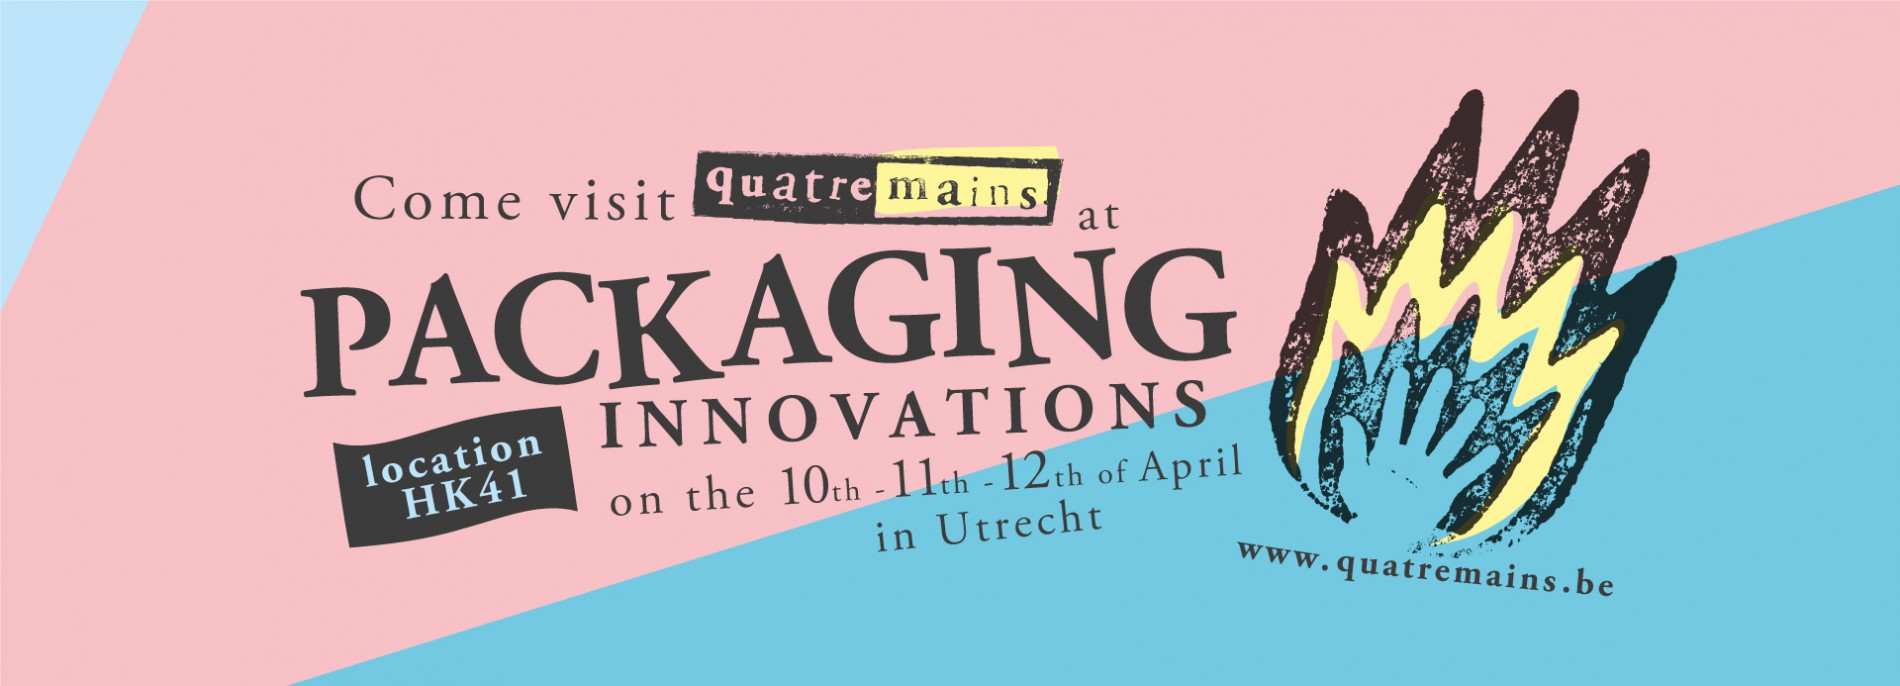 Quatre Mains package design - quatre mains, packaging innovations, utrecht, beurs